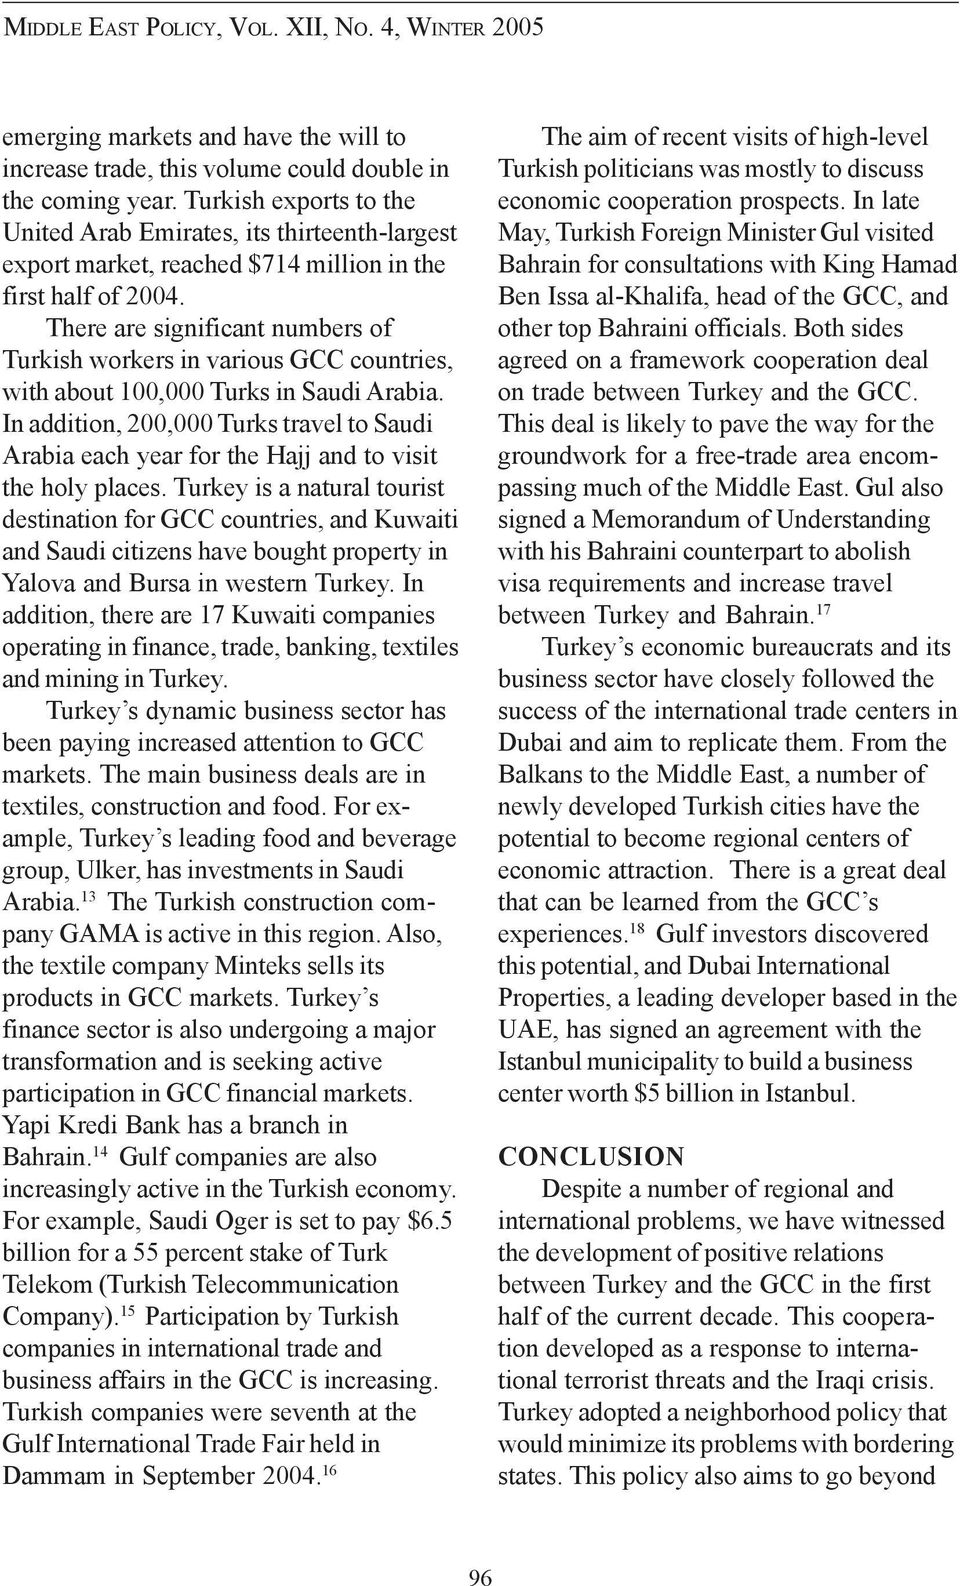 There are significant numbers of Turkish workers in various GCC countries, with about 100,000 Turks in Saudi Arabia.